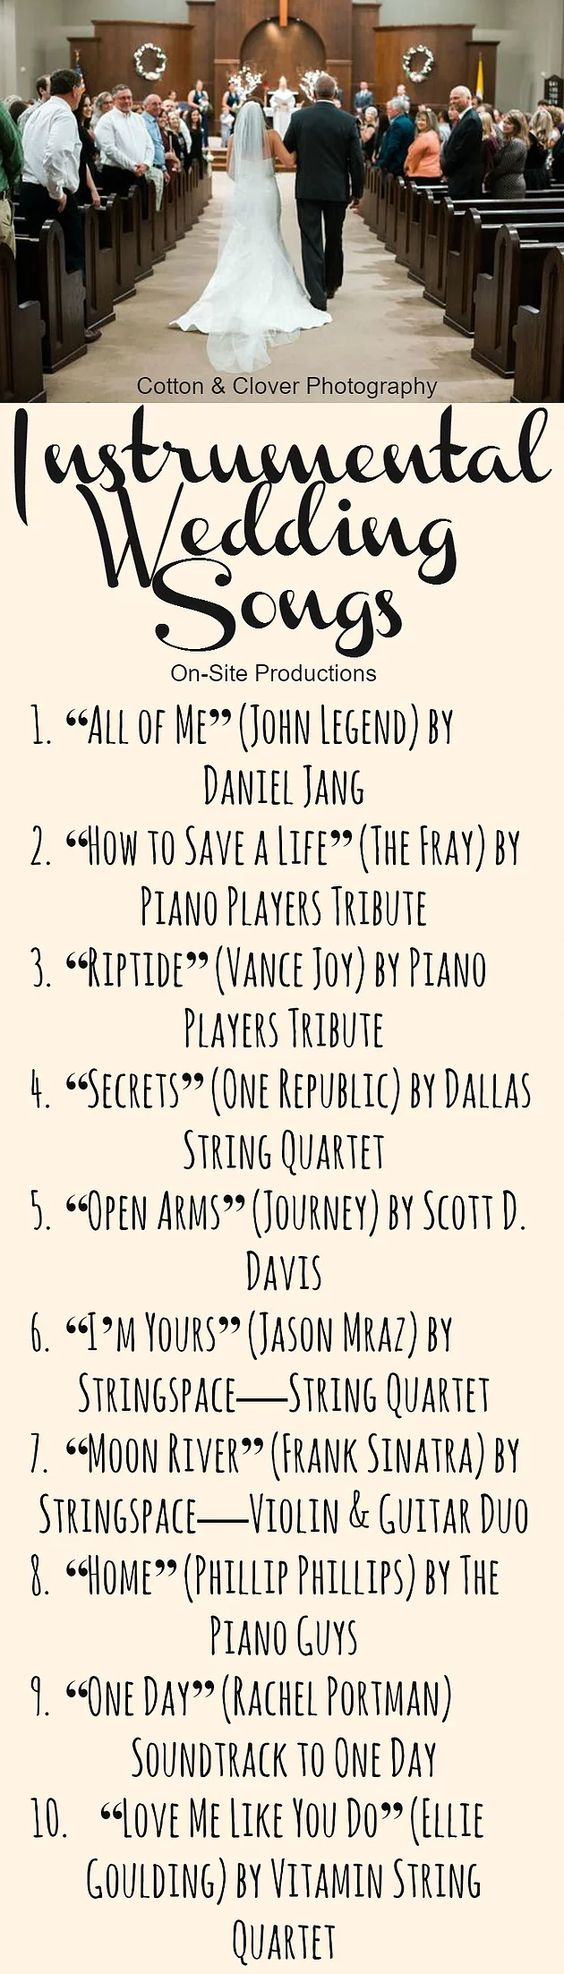 The Perfect INSTRUMENTAL Songs For Your Walk Down The Aisle I Love That Guests Will Know The